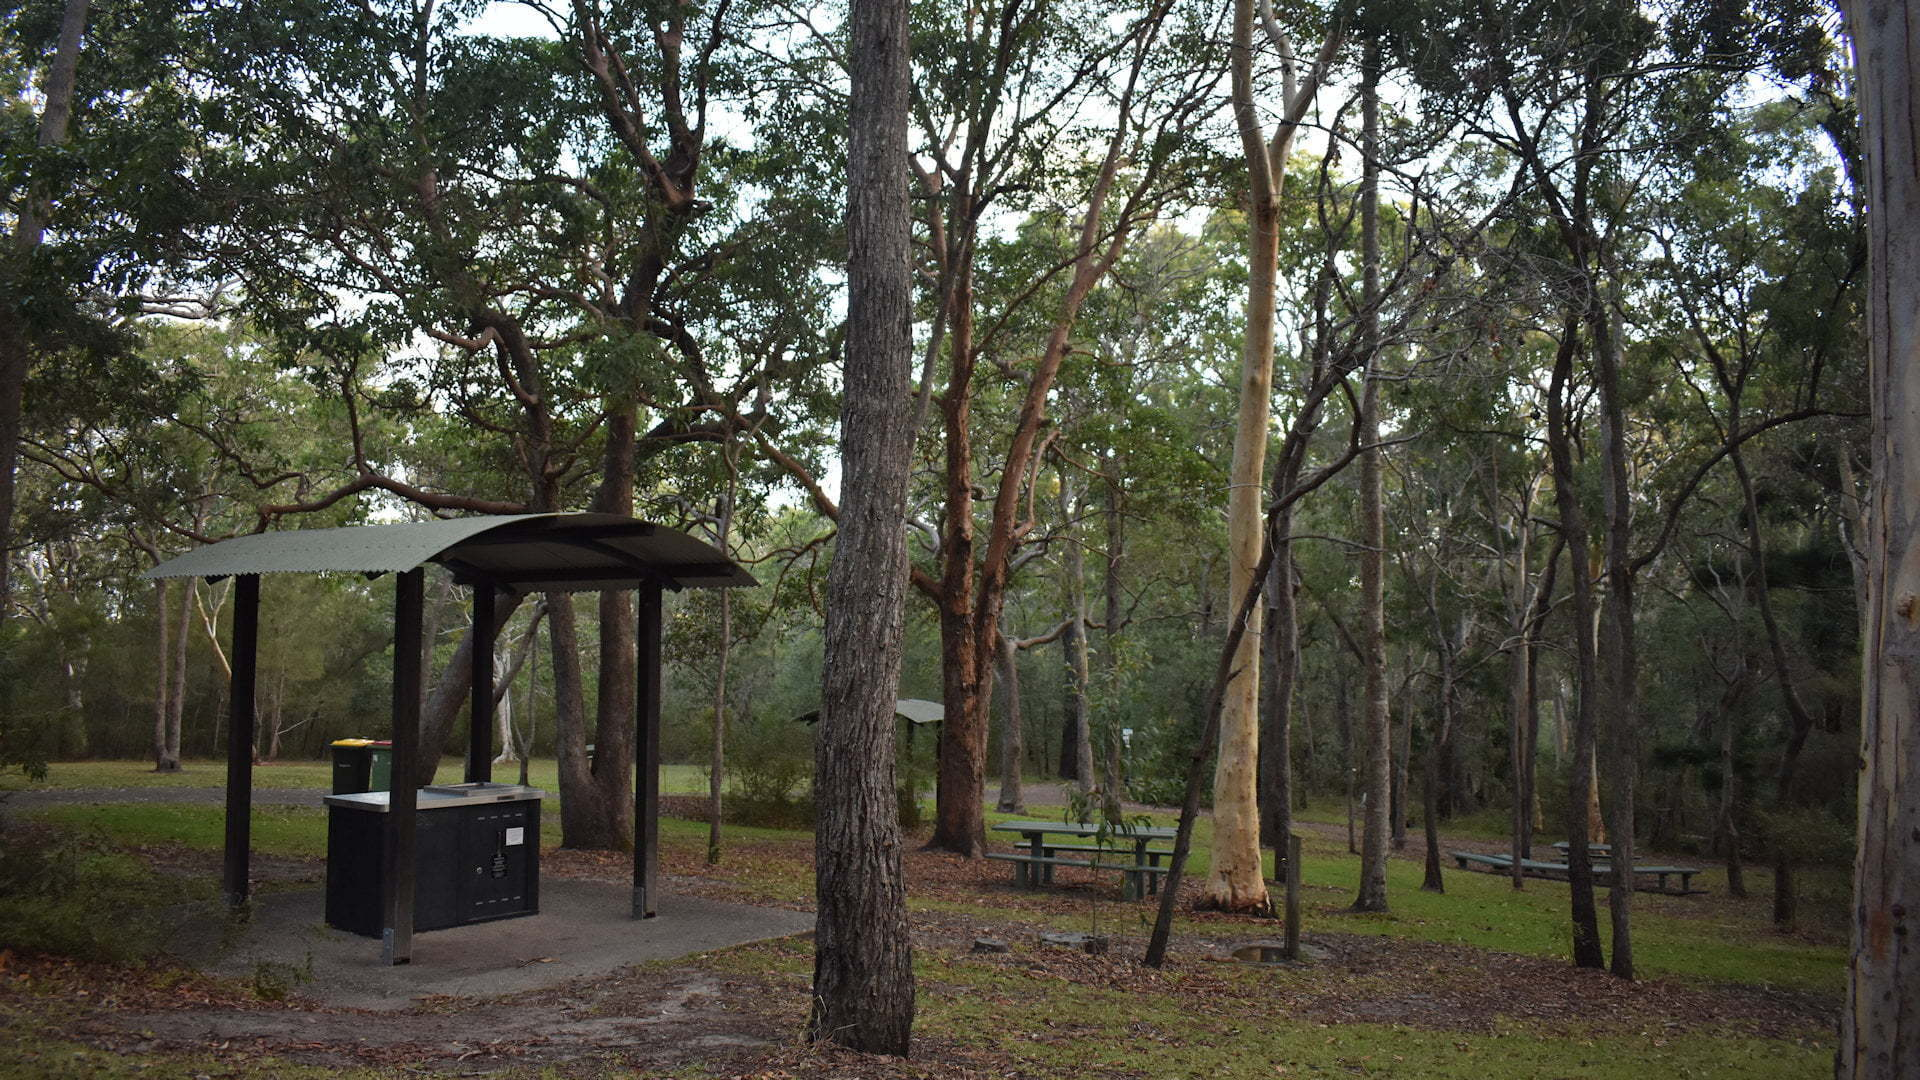 Bushland with BBQ shelter at the Ben Bennett Bushland Park in Caloundra